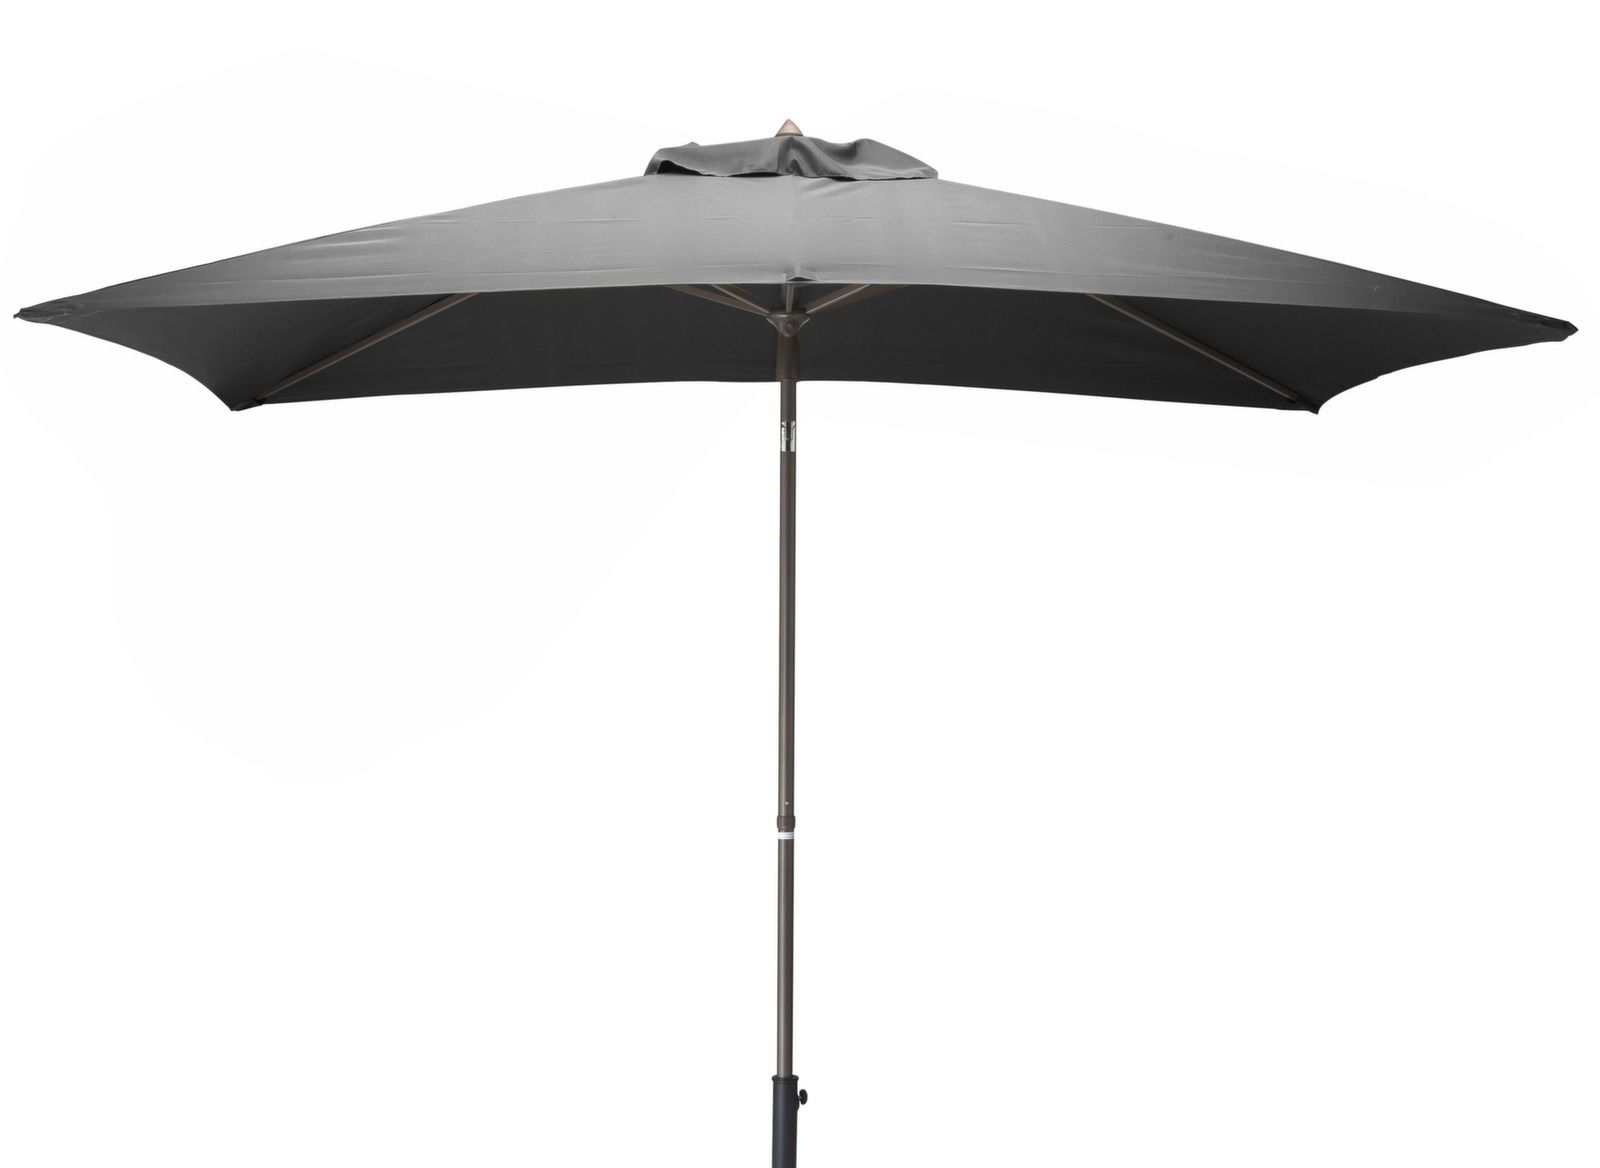 Parasol rectangulaire inclinable 3x2m meubles de jardin - Parasol rectangulaire inclinable castorama ...